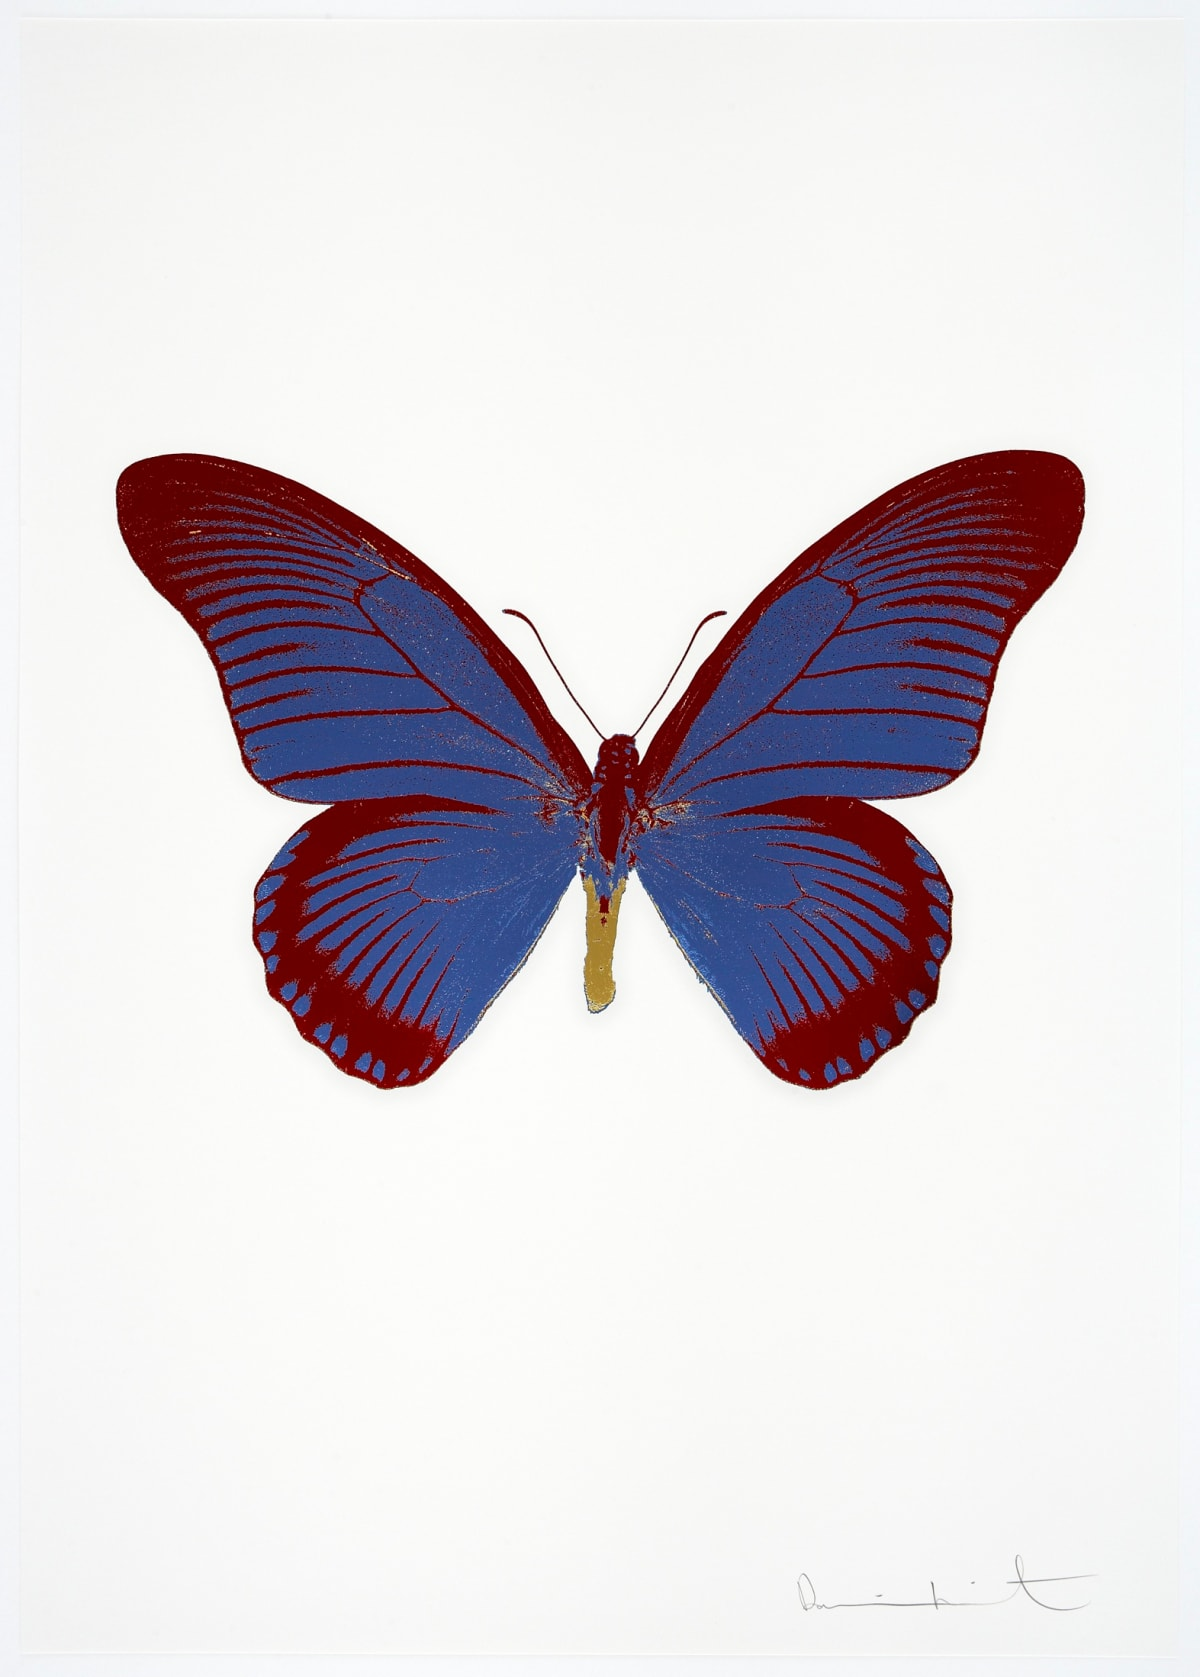 Damien Hirst The Souls IV - Frost Blue/Chilli Red/Oriental Gold, 2010 3 colour foil block on 300gsm Arches 88 archival paper. Signed and numbered. Published by Paul Stolper and Other Criteria 72 x 51cm OC8026 / 1418-49 Edition of 15